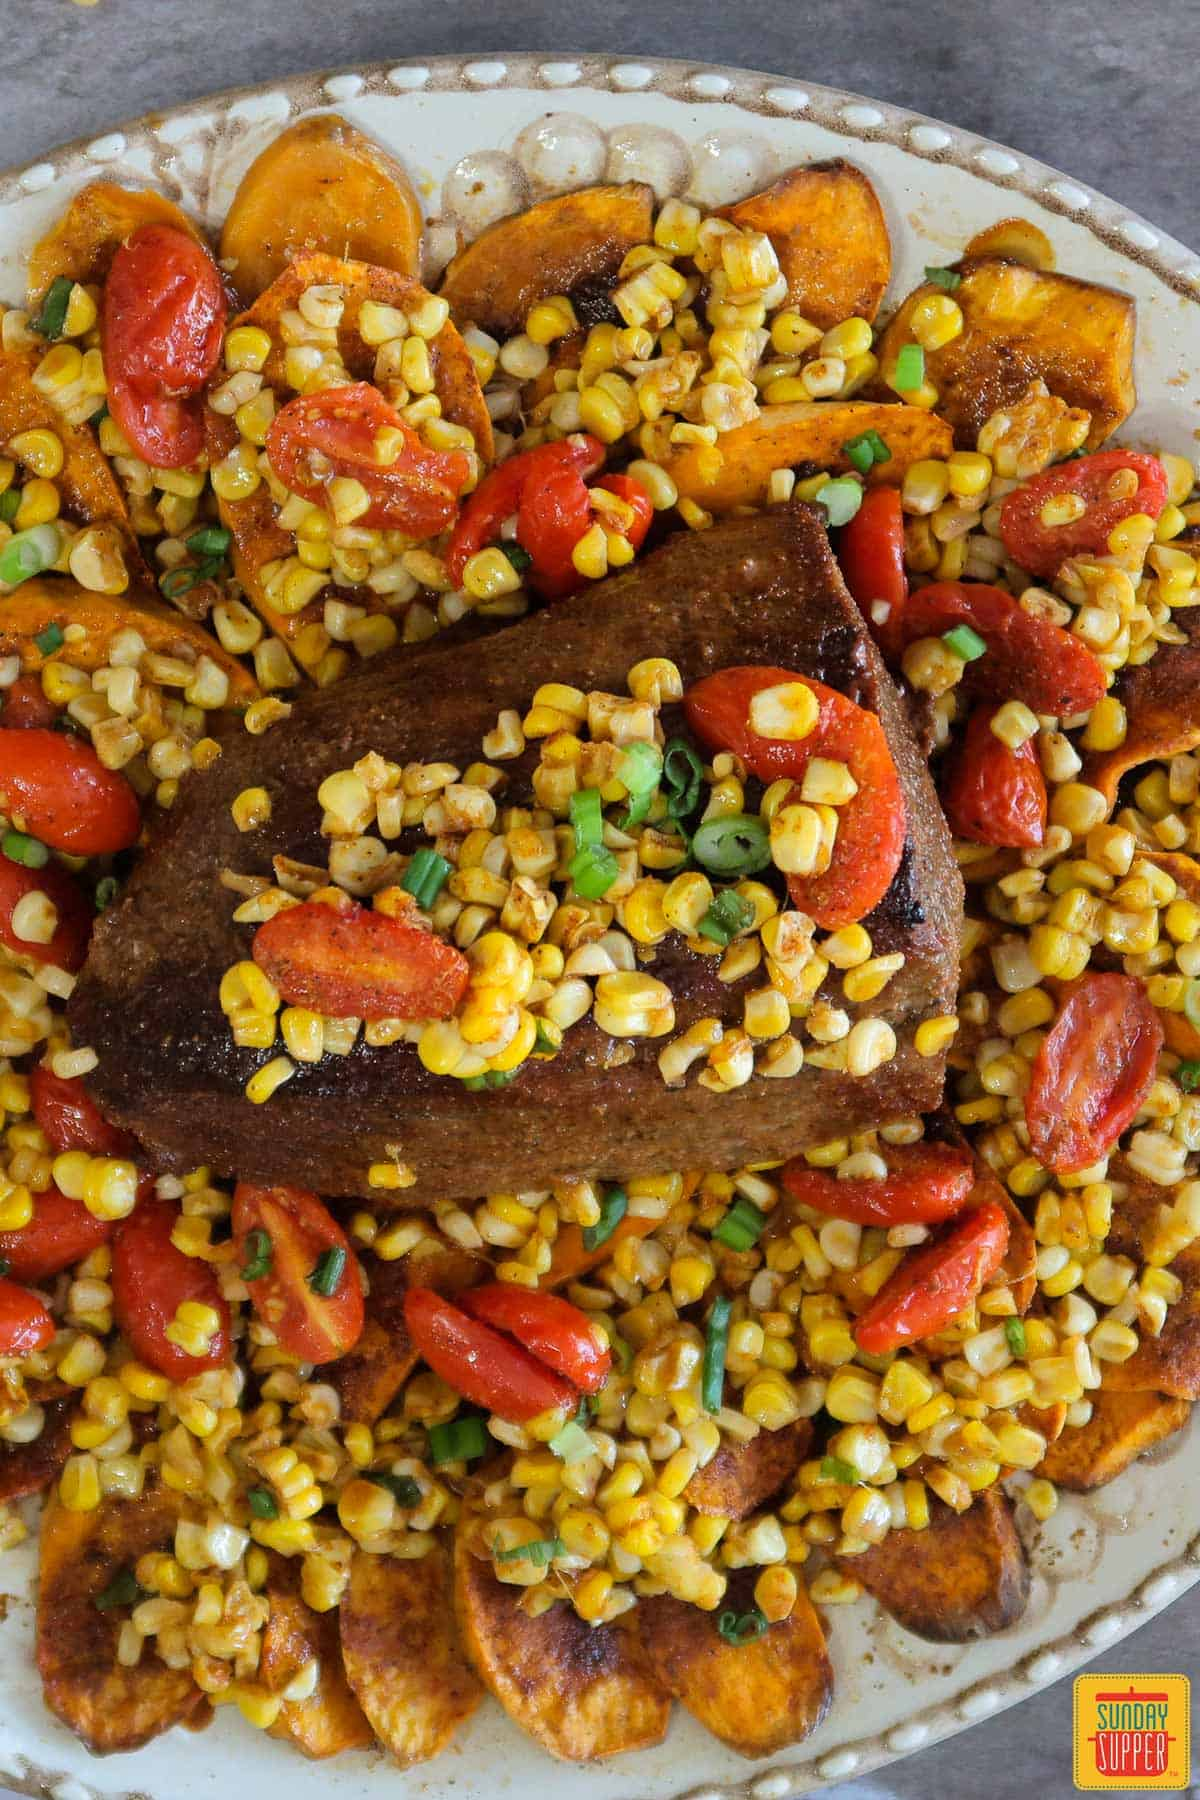 Corn and tomatoes on top of eye of round roast